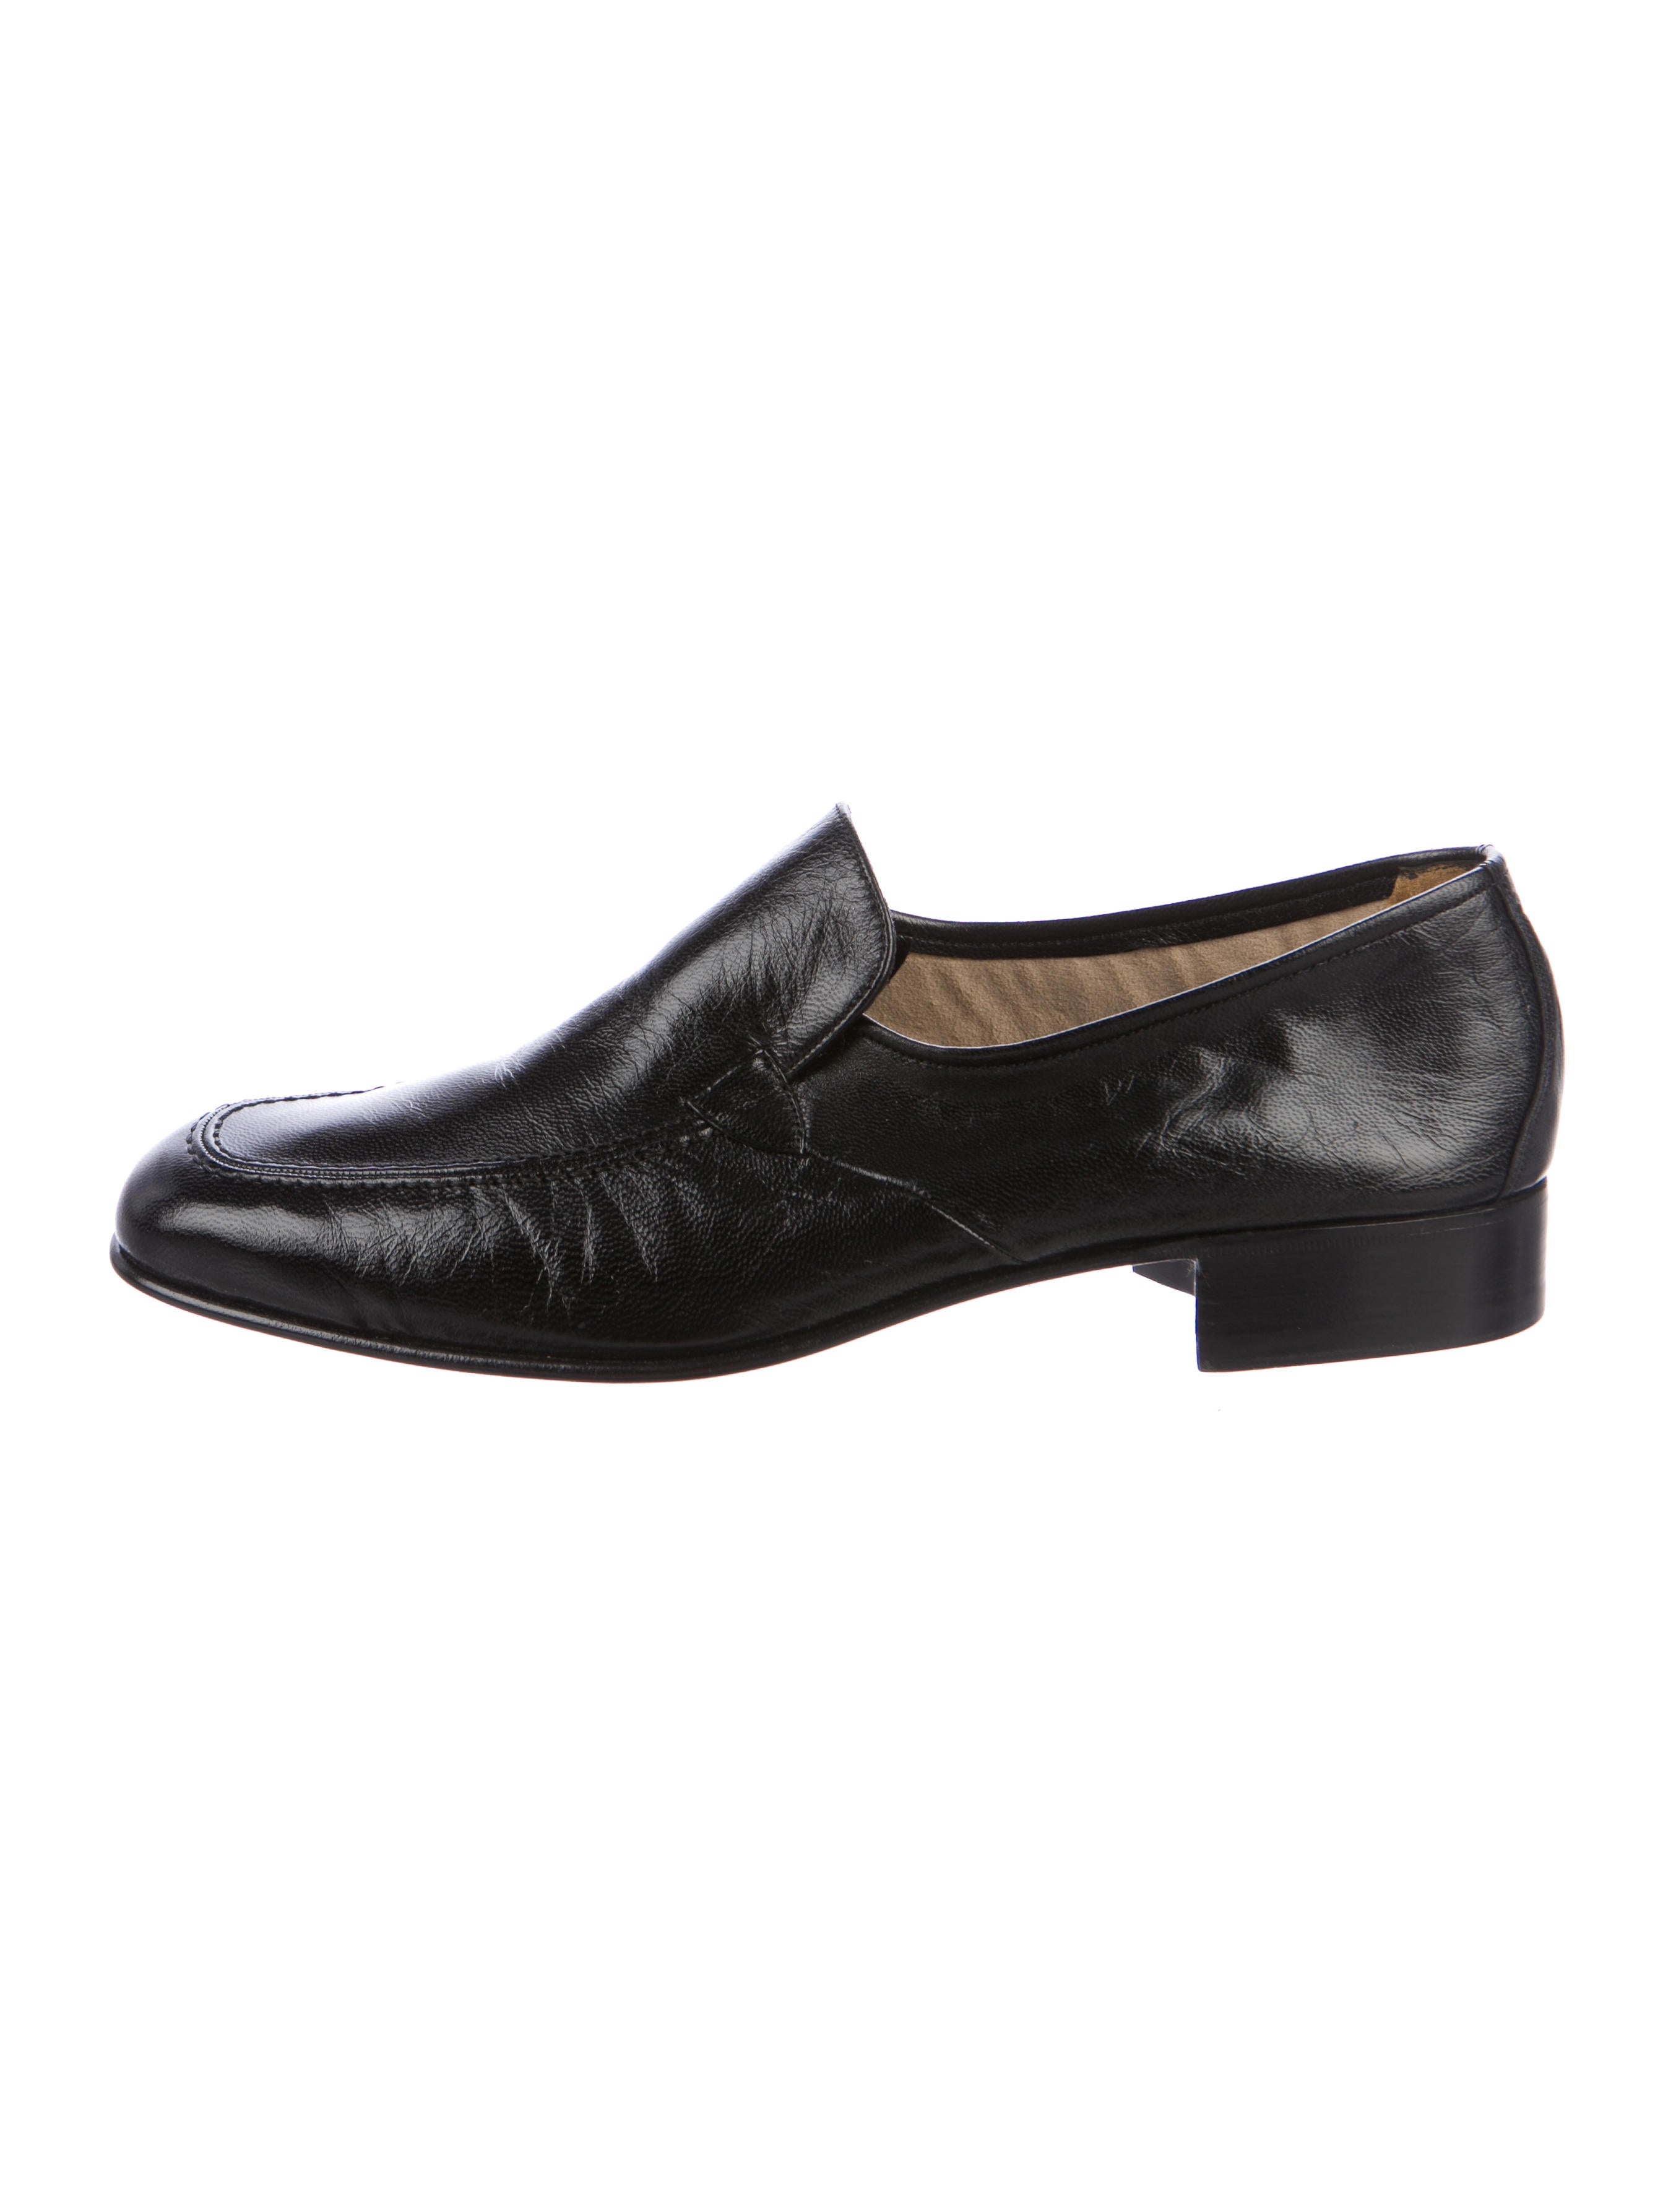 clearance marketable visa payment online Bally Leather Round-Toe Loafers clearance online ebay free shipping cost ZpAxa